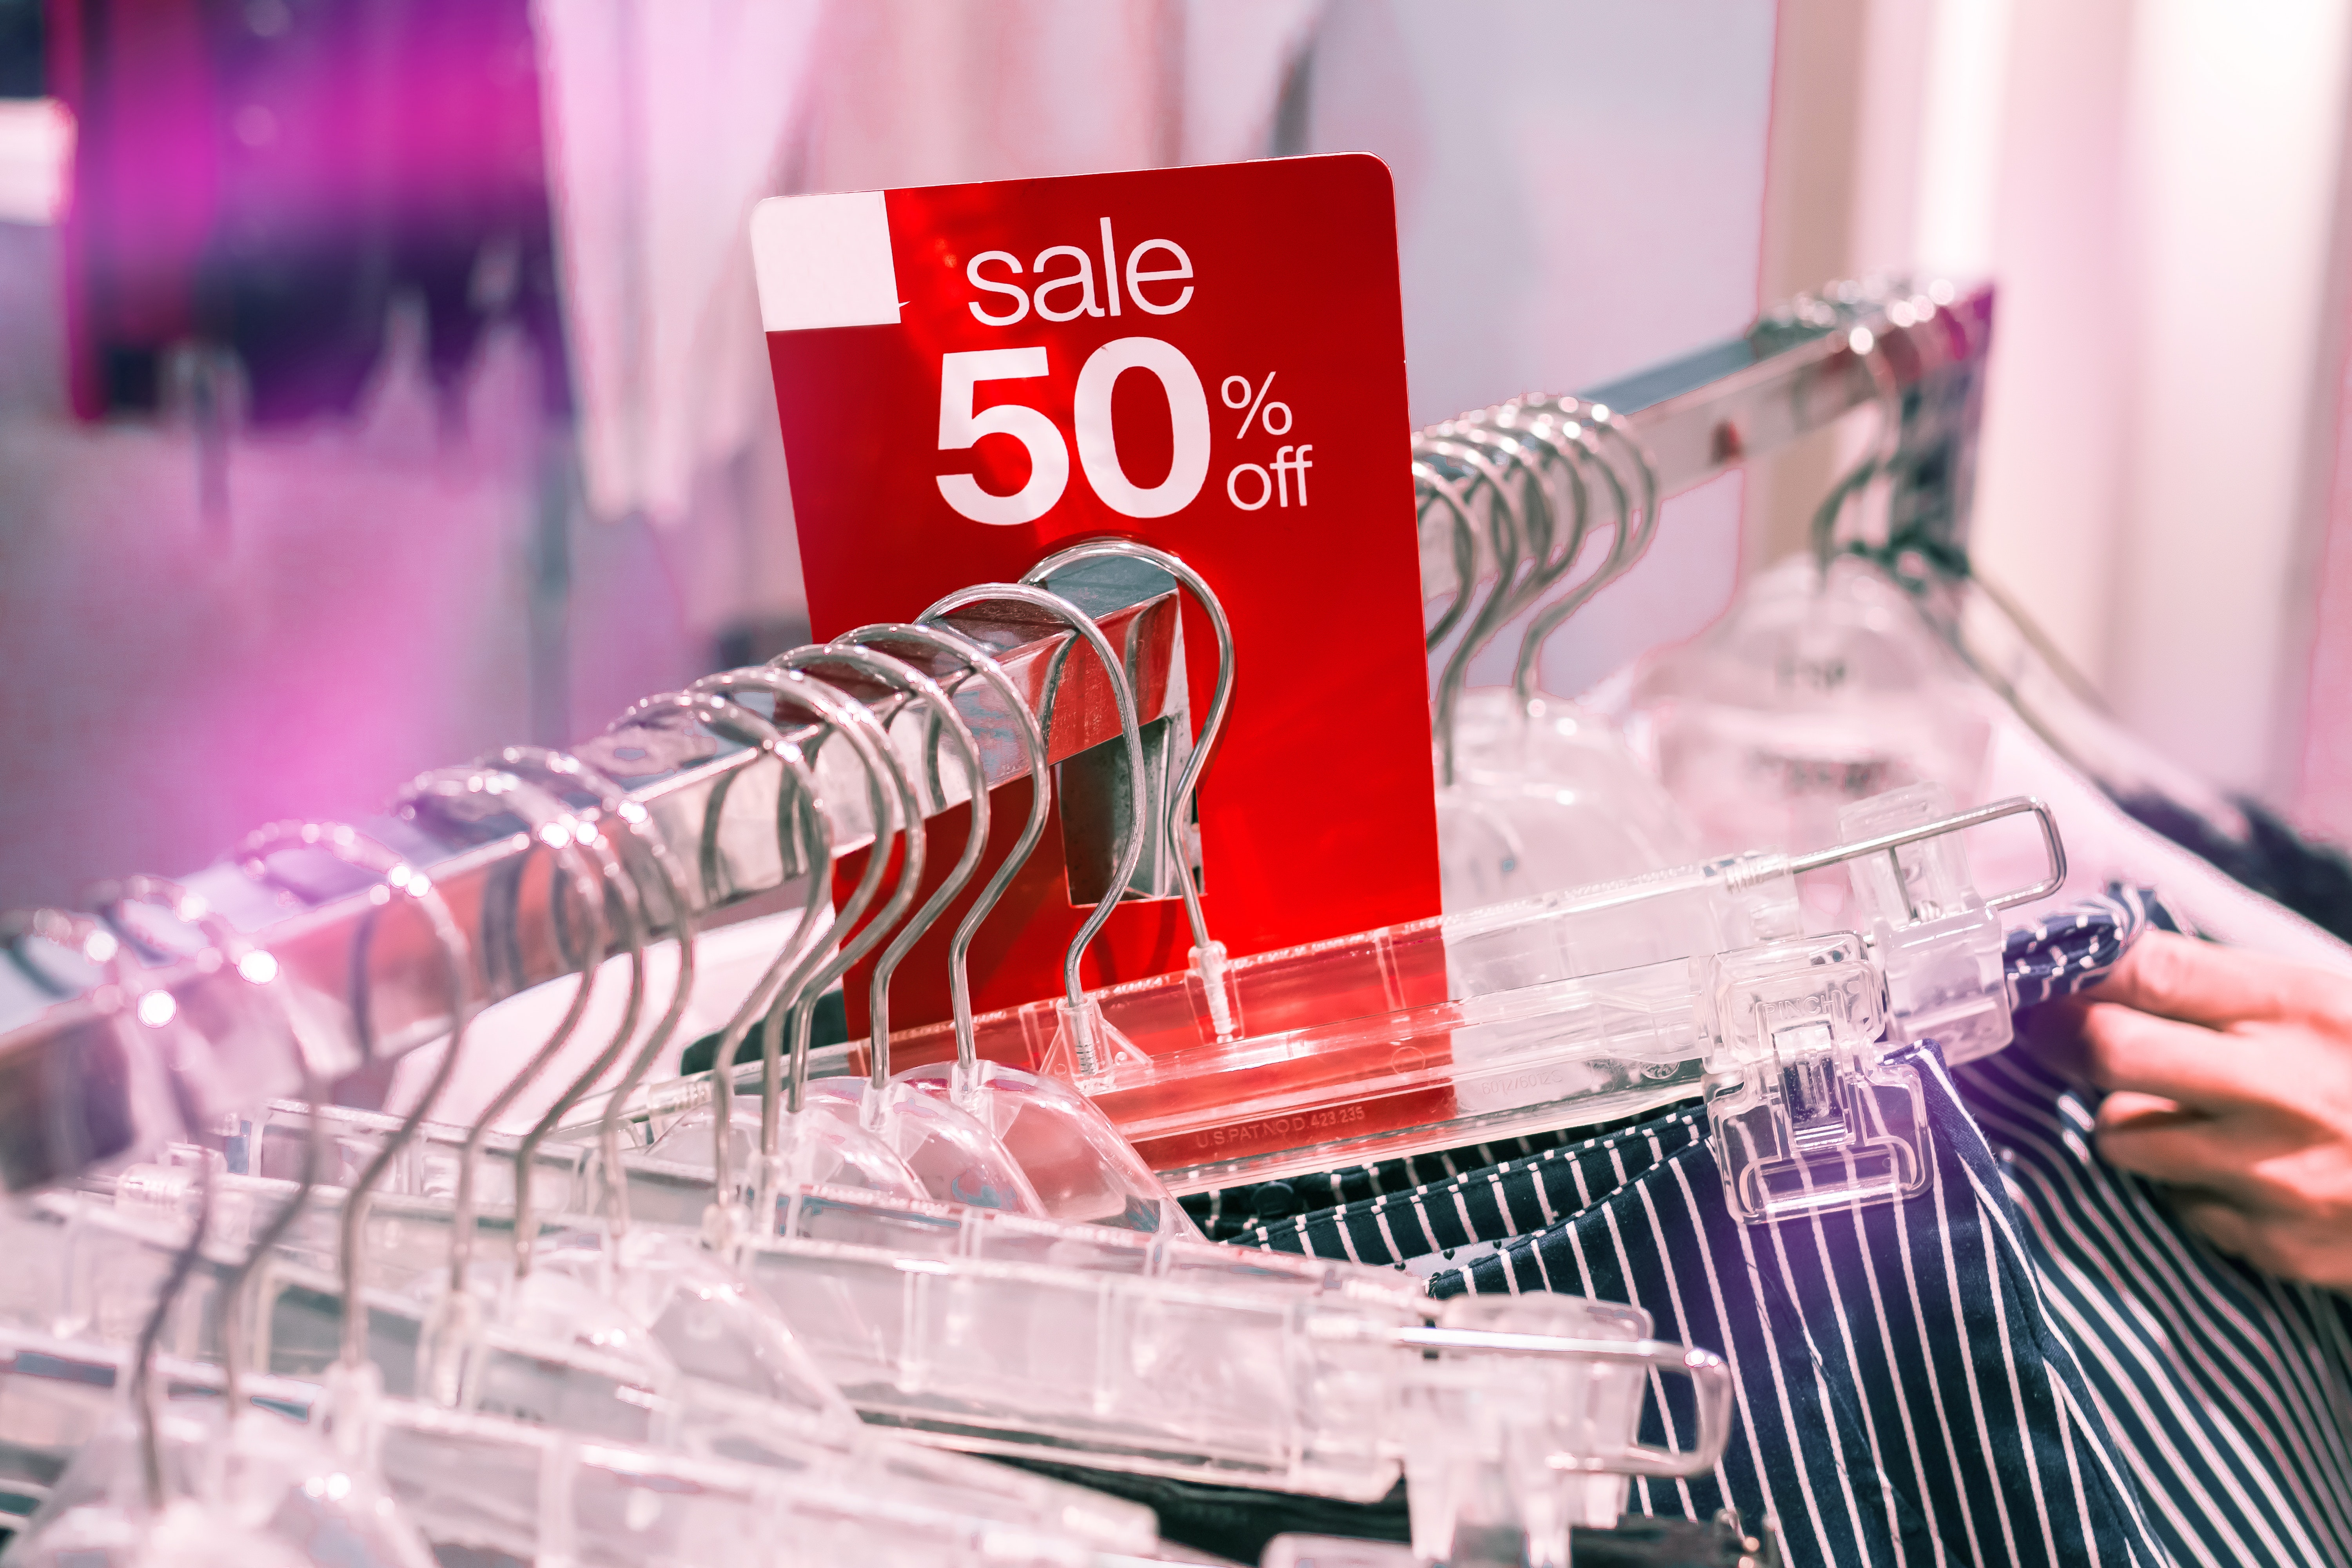 50% off sale sign on clothing at store